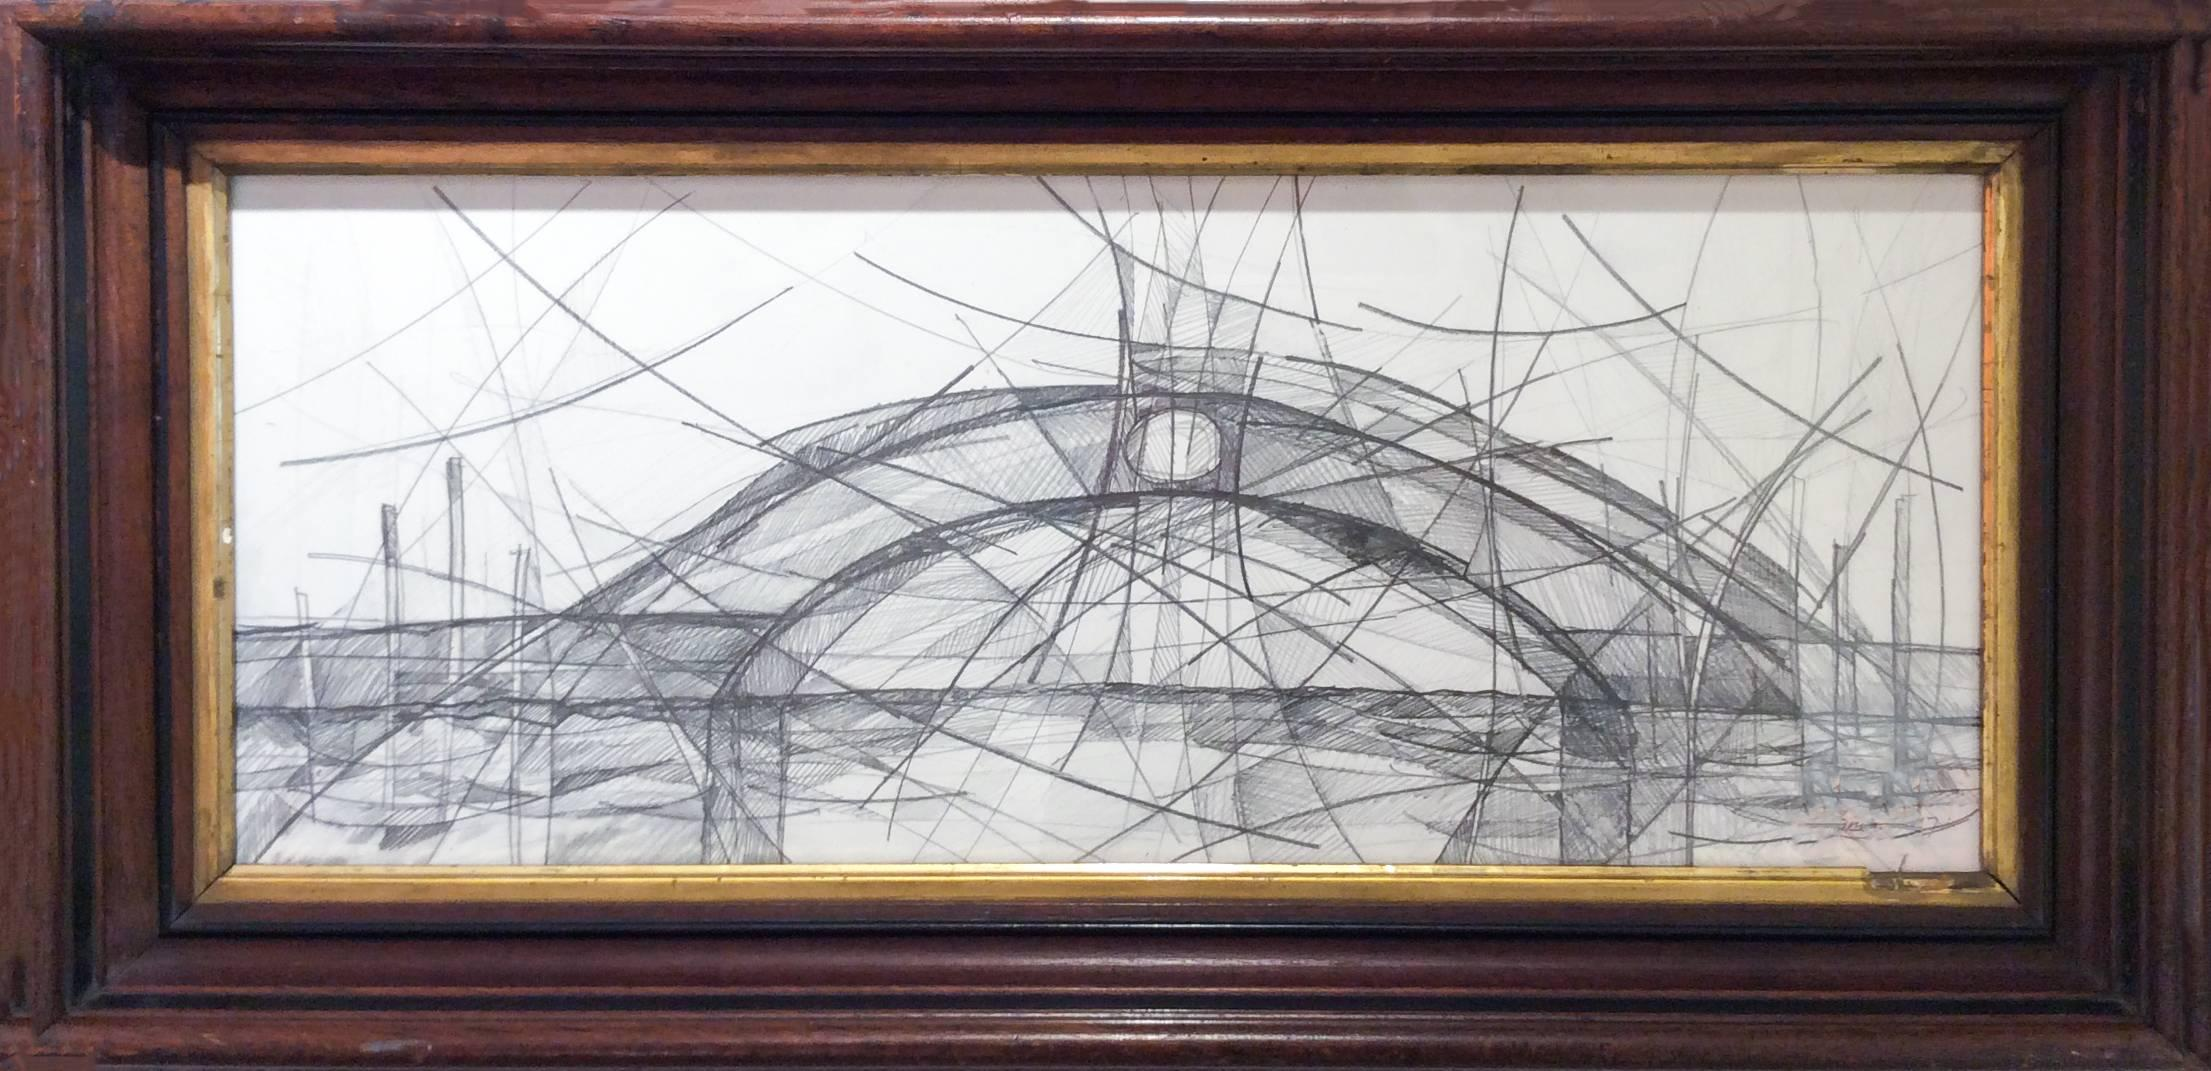 Venetian Bridge X (Abstract, Cubist Style Graphite Drawing in Vintage Frame)